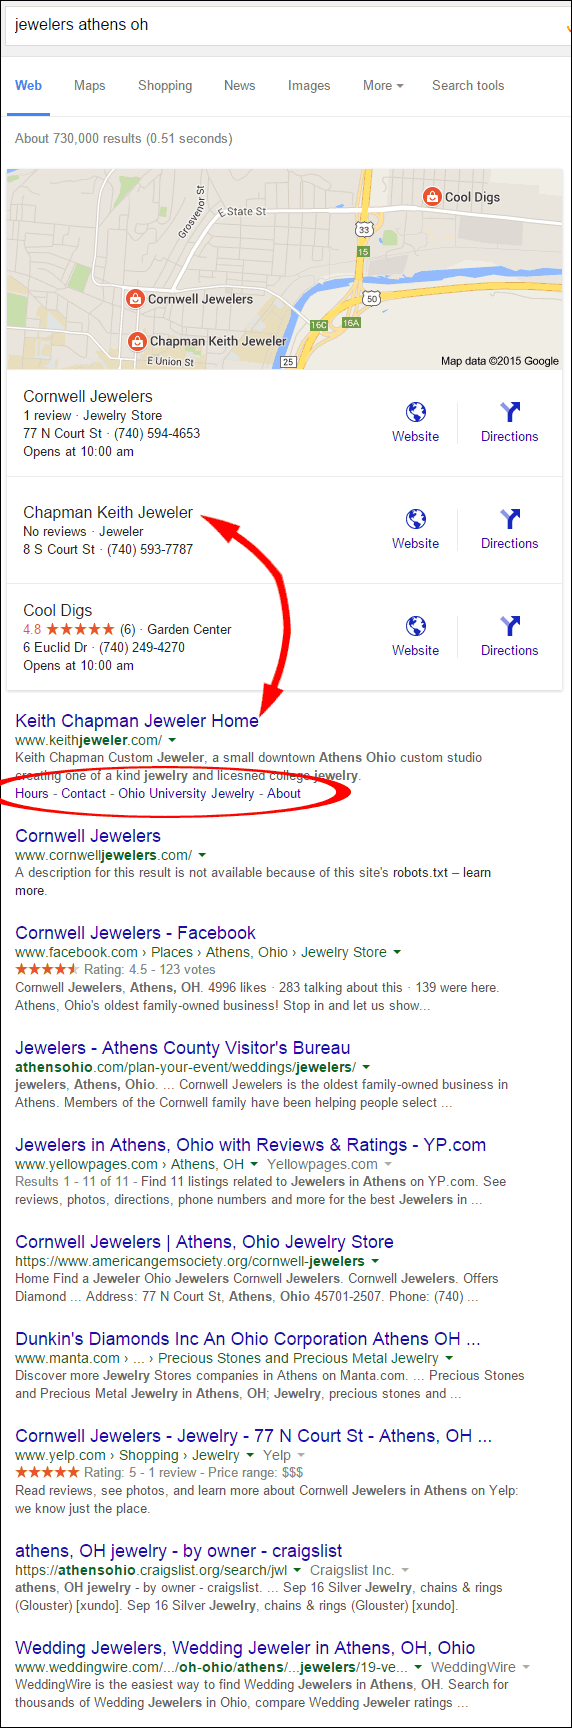 Keith Chapman Jeweler Website Review 1360-jewelers-athens-oh-serp-85